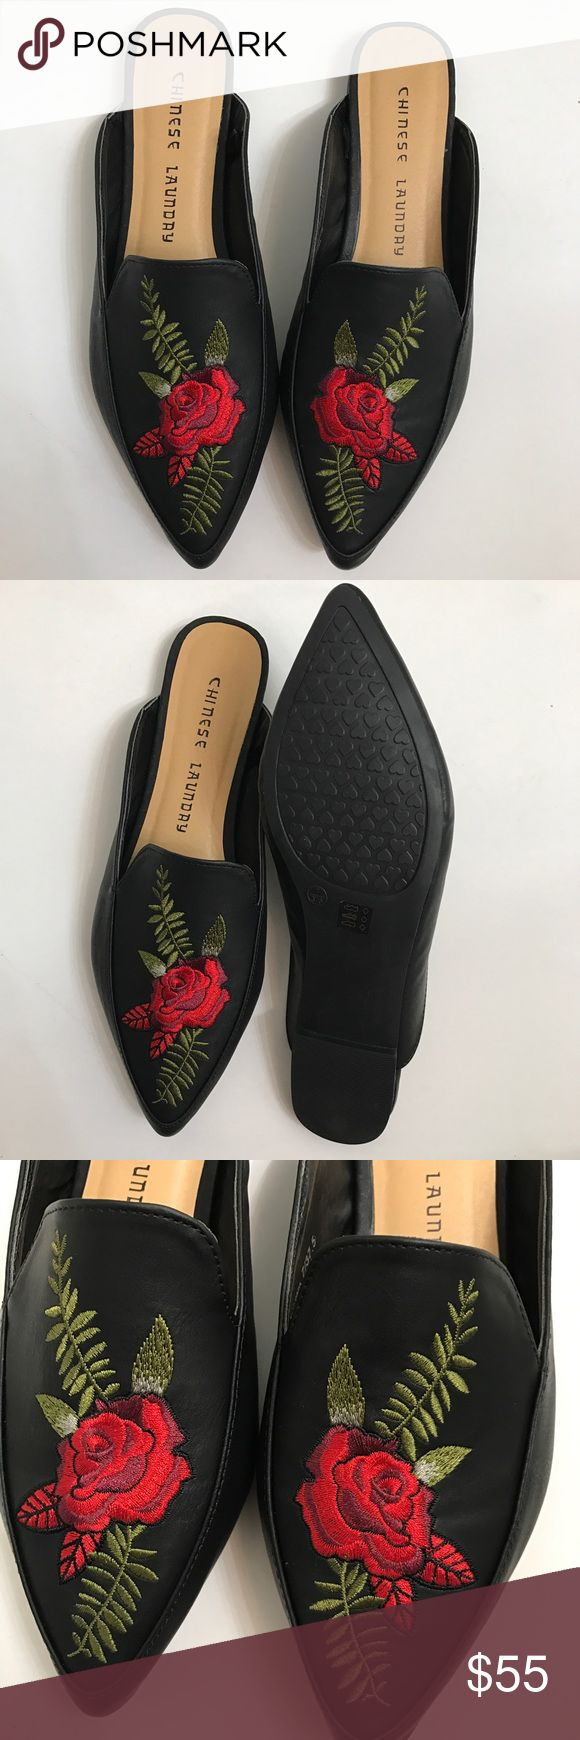 Loafers flowers Loafers mules Flowers Embroidery FancyWork Chinese Laundry New 7 size  Firm  price !!! Tags  Dolce & Gabbana  Chic shoes  Trendy  Fashion  Flowers print Chinese Laundry Shoes Mules & Clogs